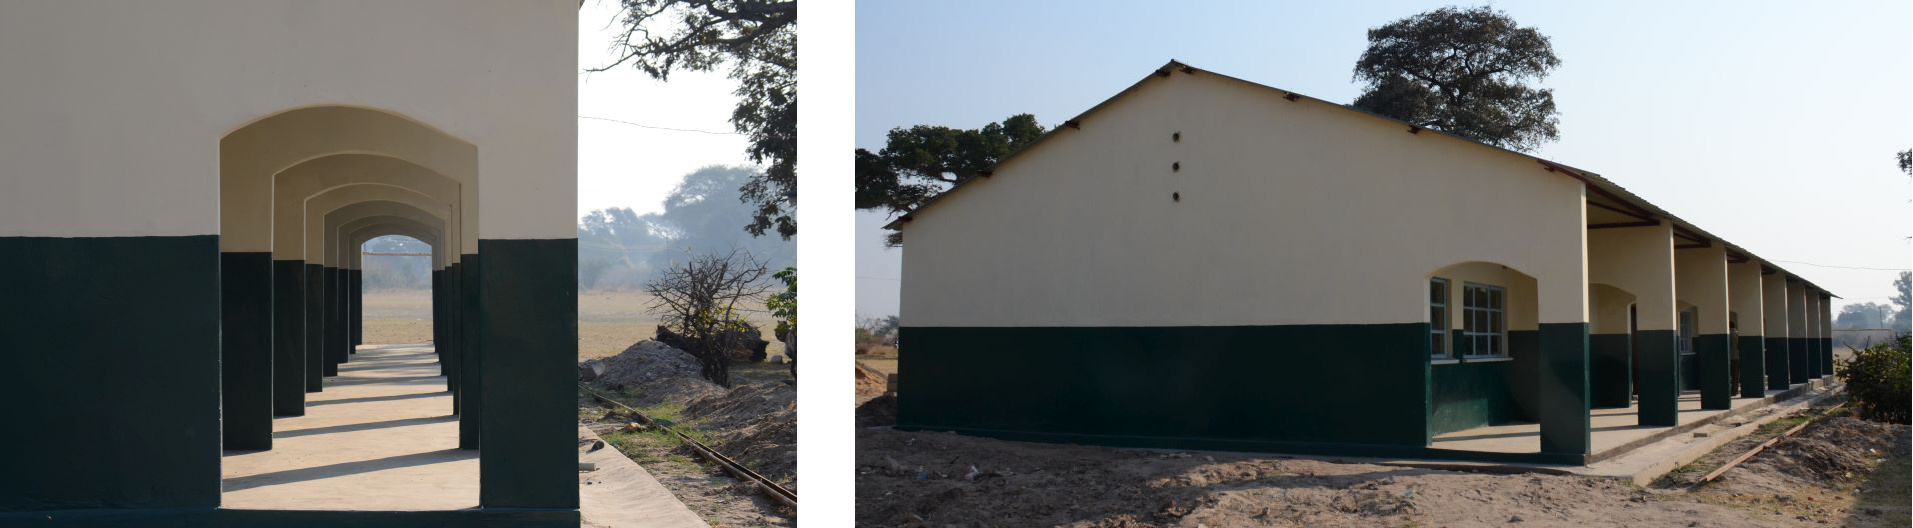 August 2015: The new 1x3 classroom block